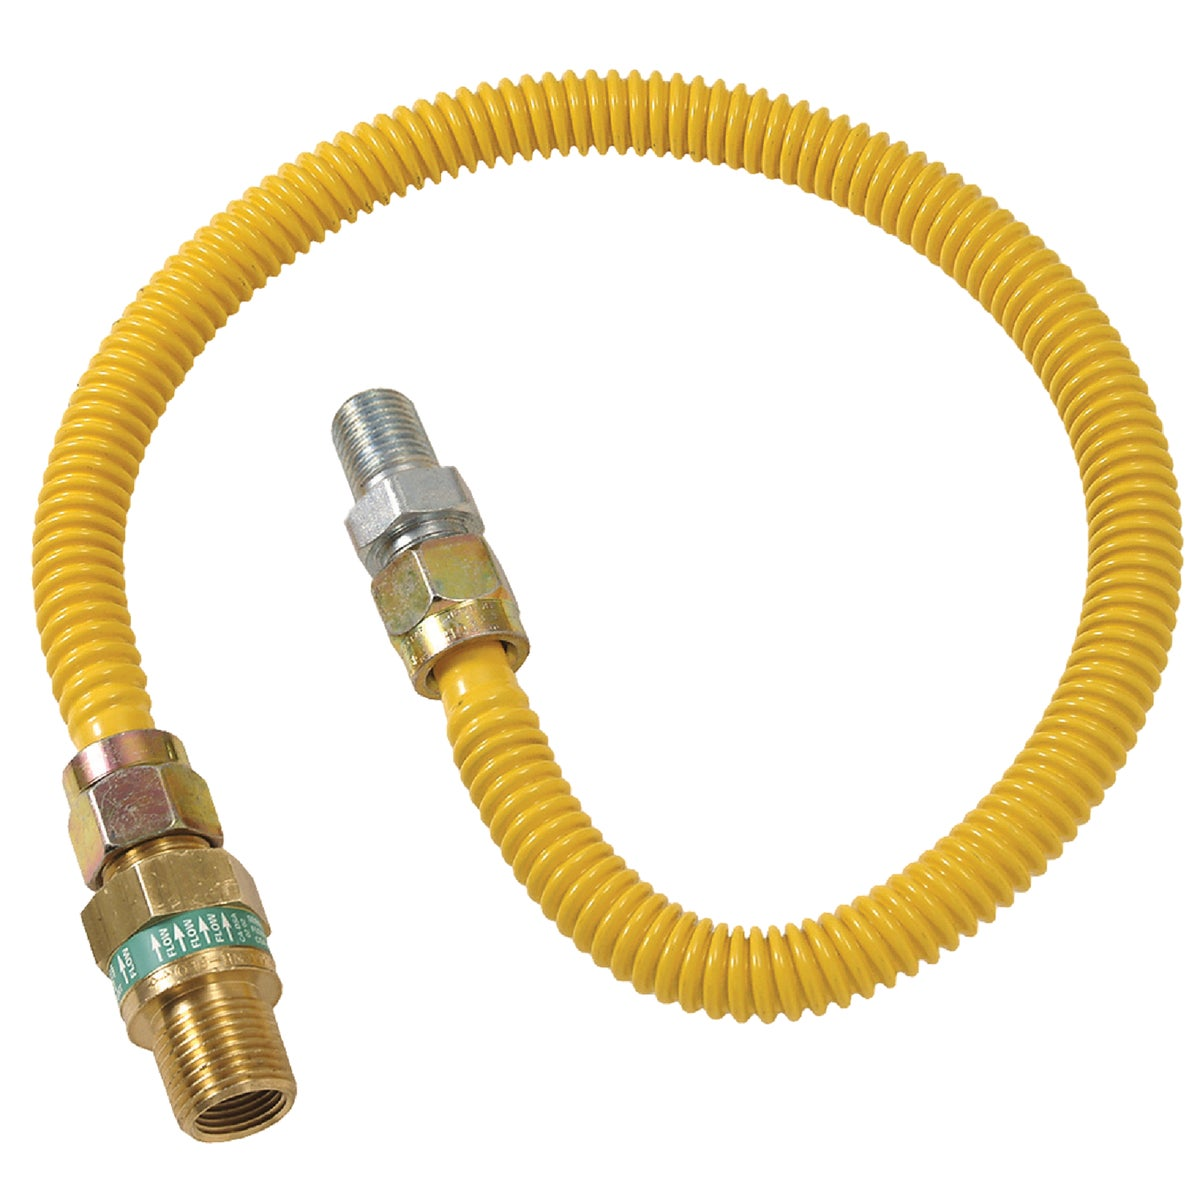 1/2X1/2-36 GAS CONNECTOR - CSSD44E-36P by Brass Craft